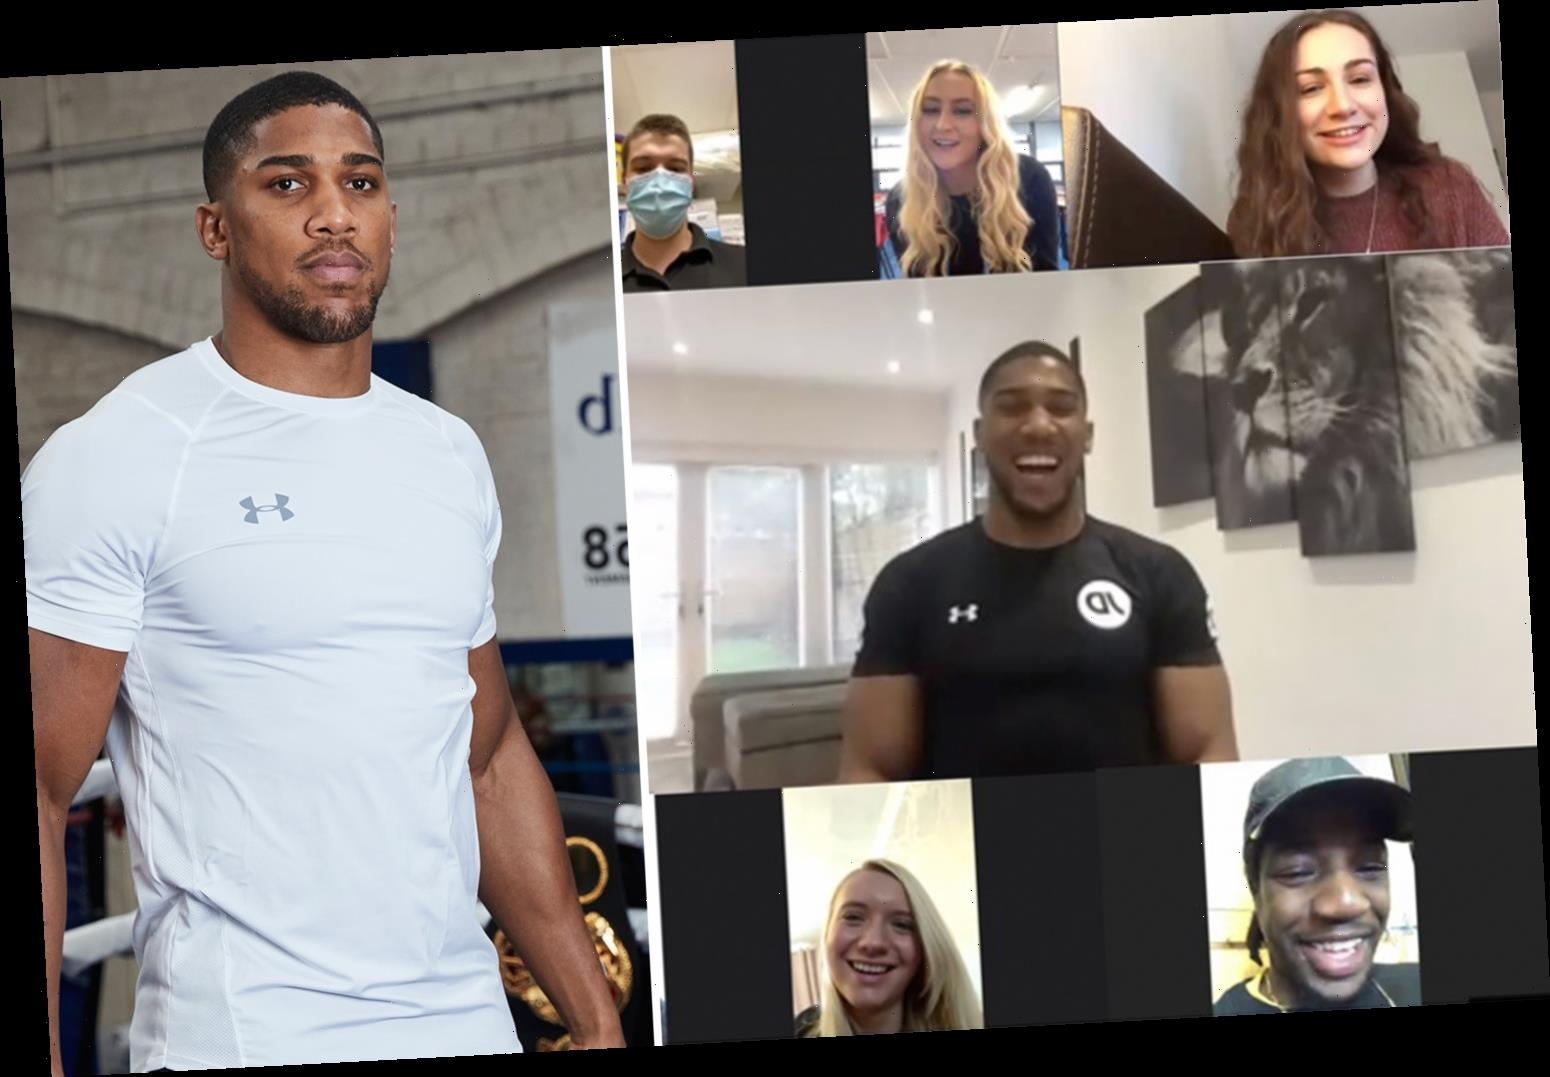 Anthony Joshua continues to show caring side as he honours public who made difference in 2020 through Covid-19 pandemic